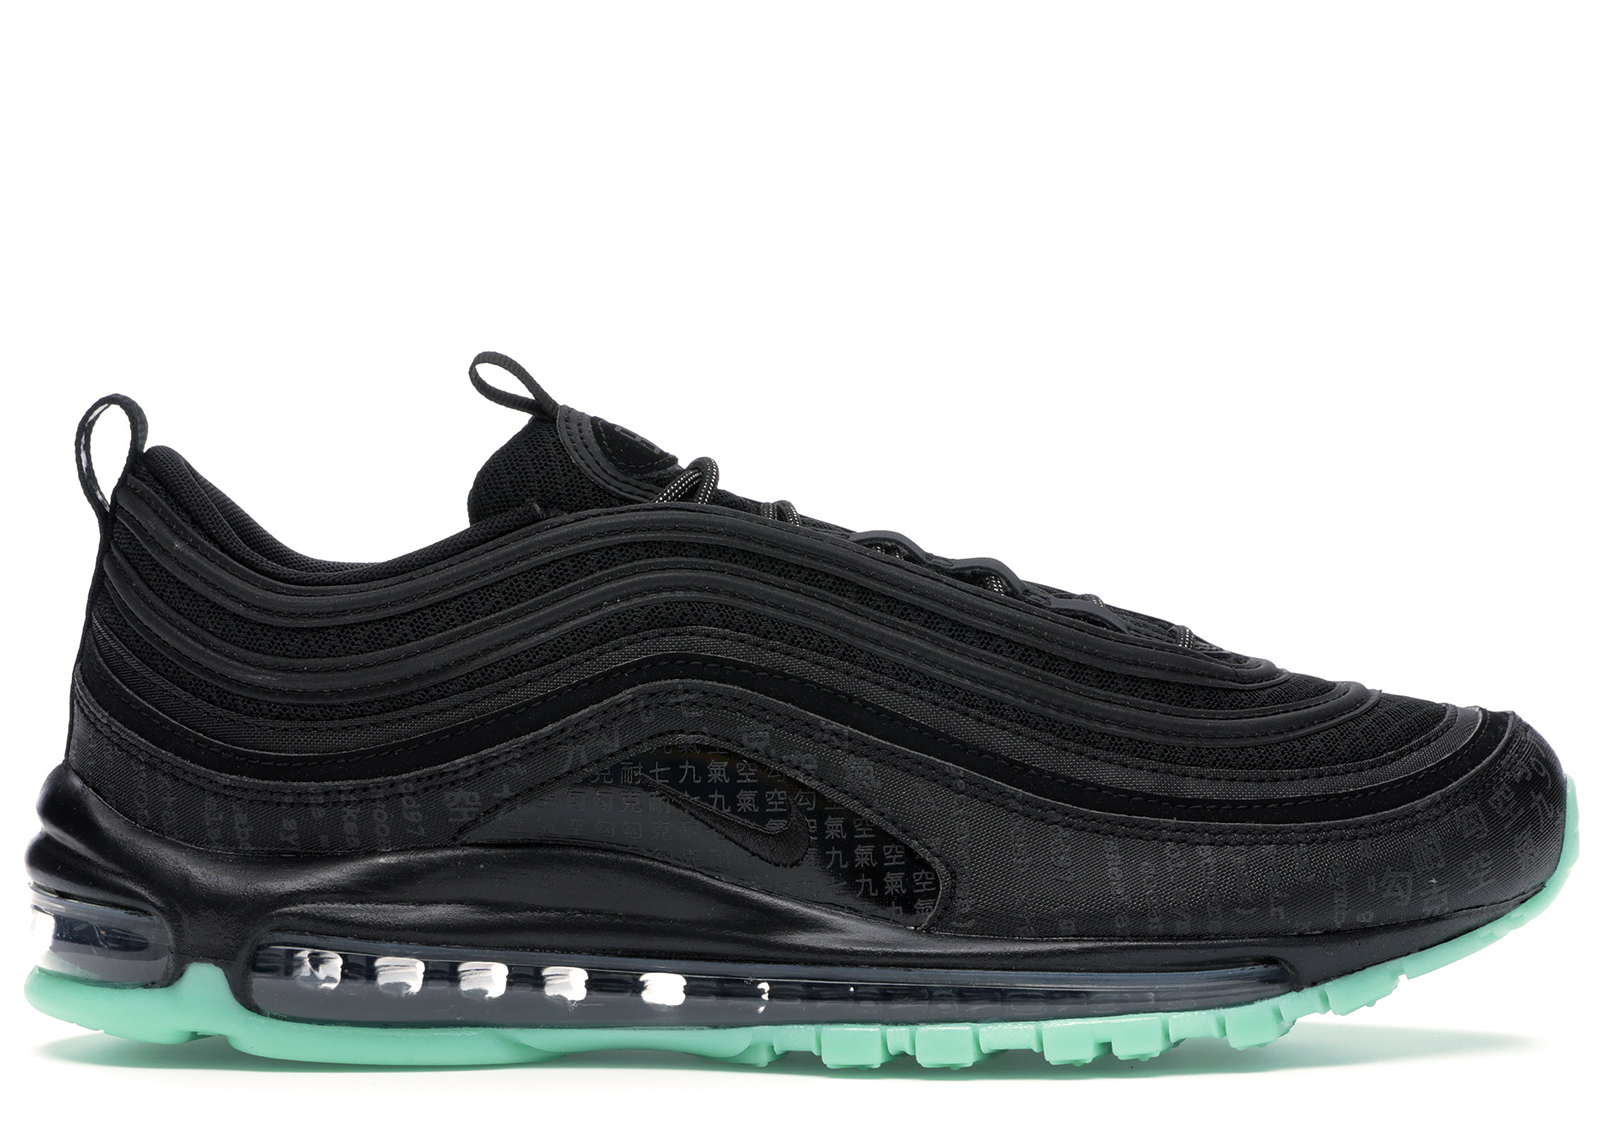 air max 97 verde acqua